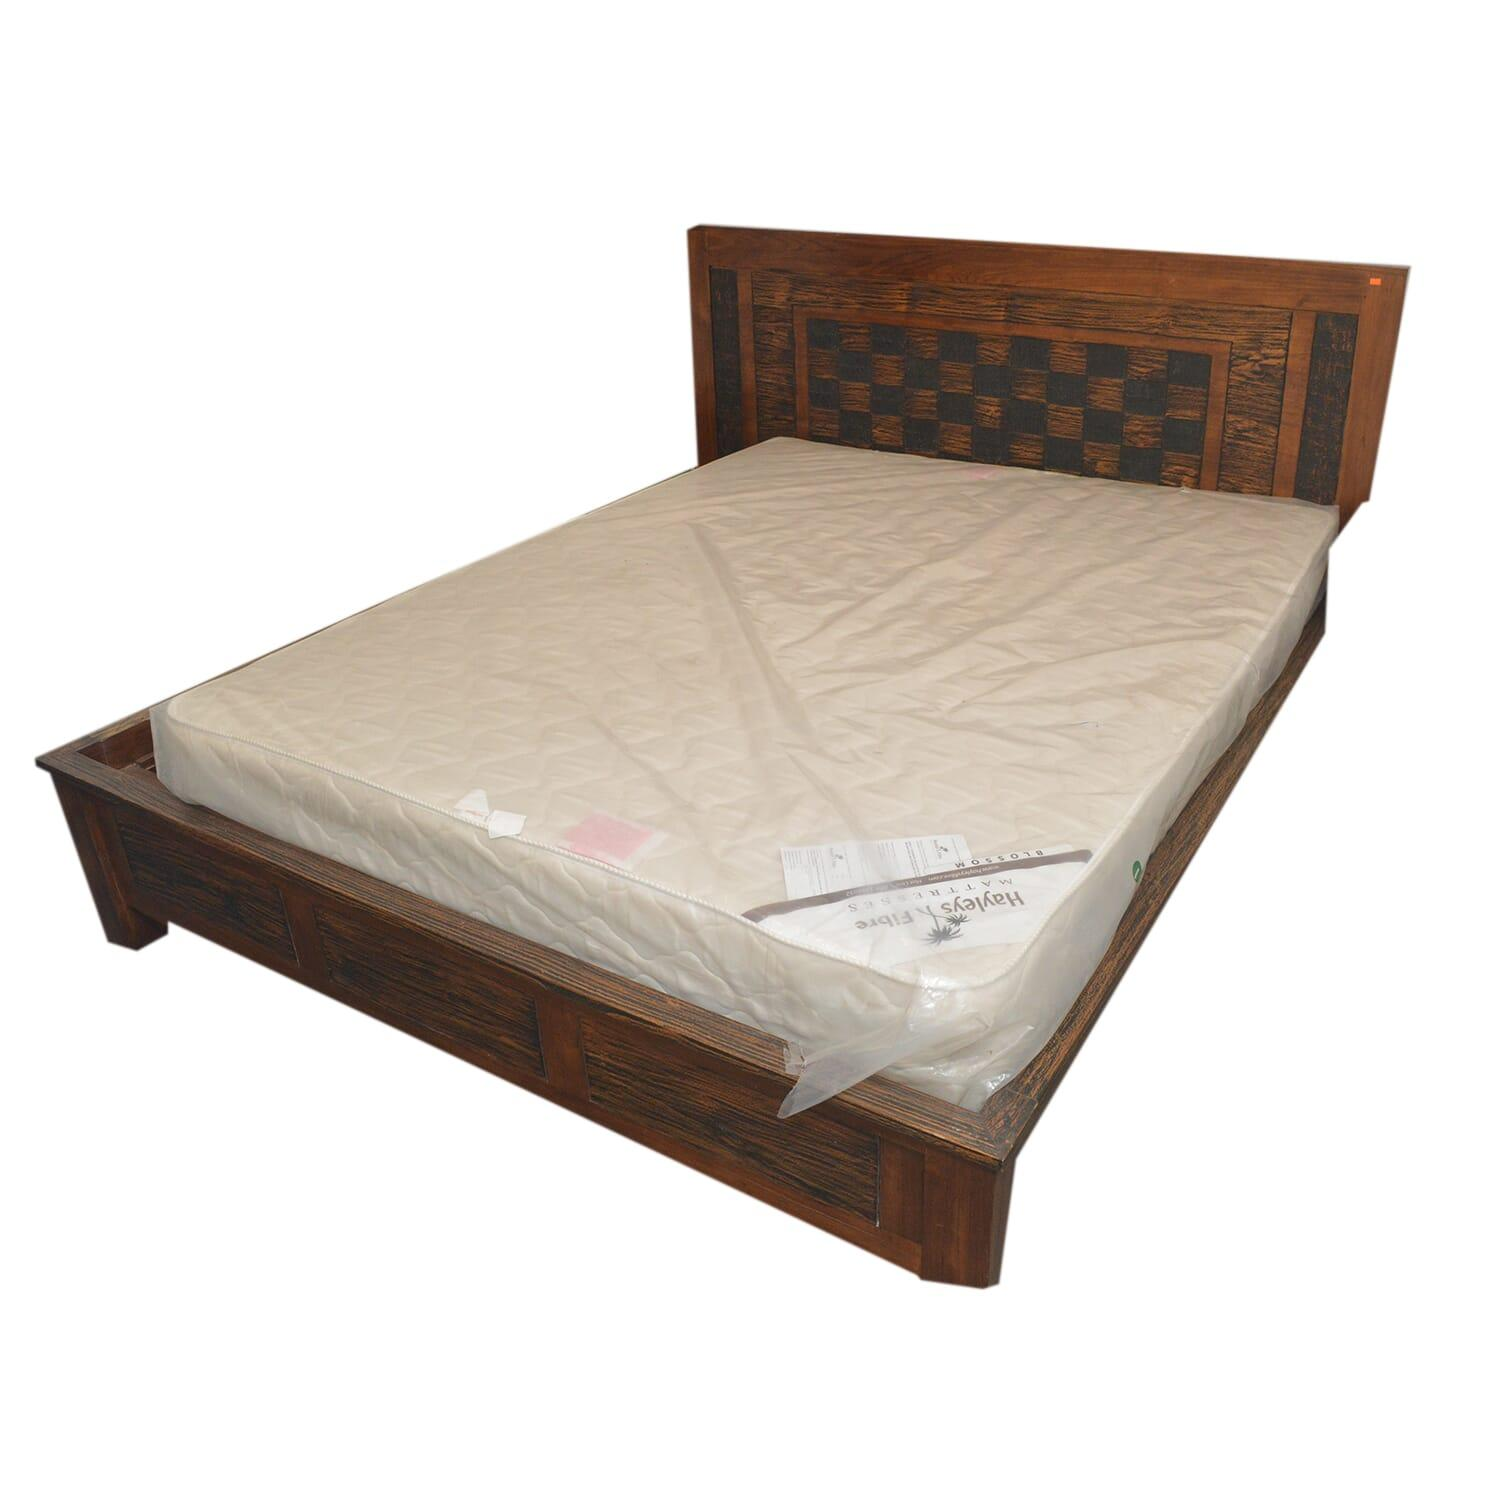 Double Bed - Brown